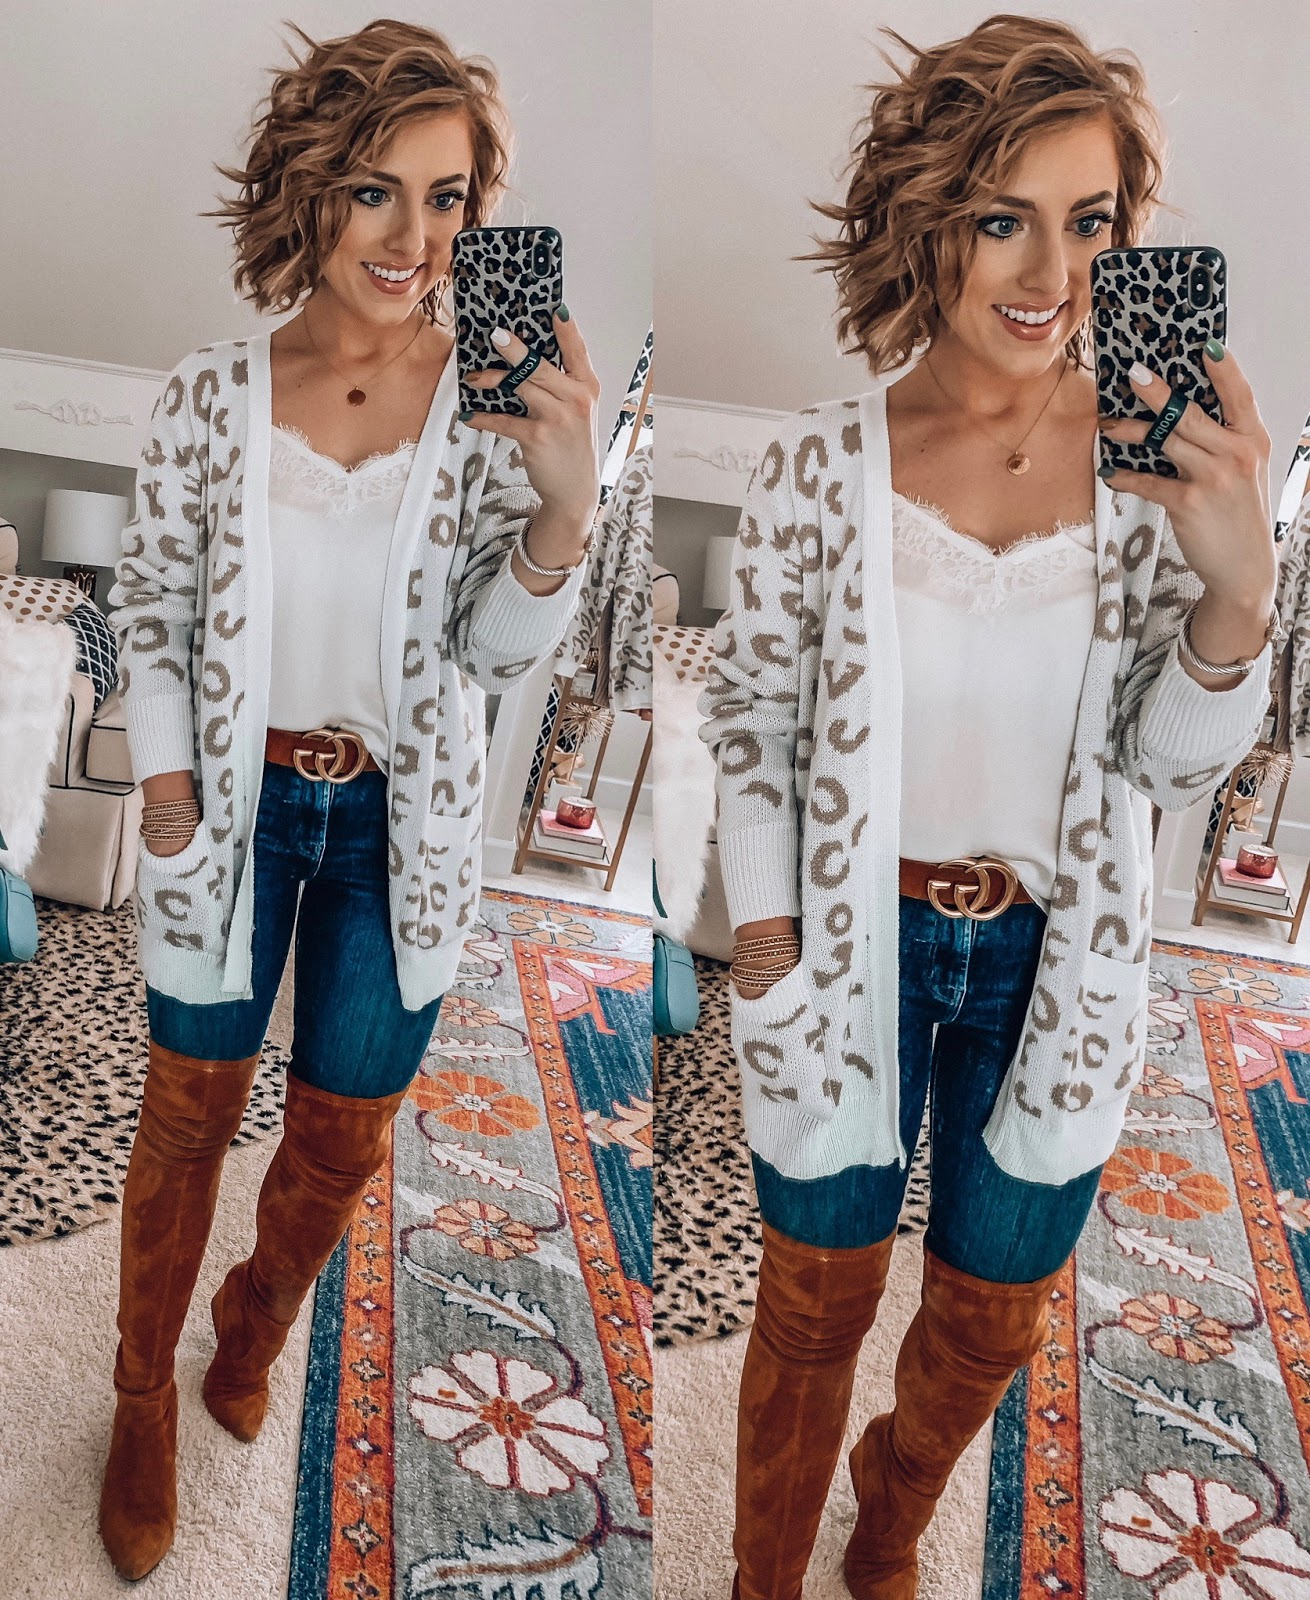 Recent Amazon Finds: Sweaters & Cardigans Edition - $28 Leopard Print Cardigan  - Something Delightful Blog #FallStyle #AmazonFashion #AffordableStyle